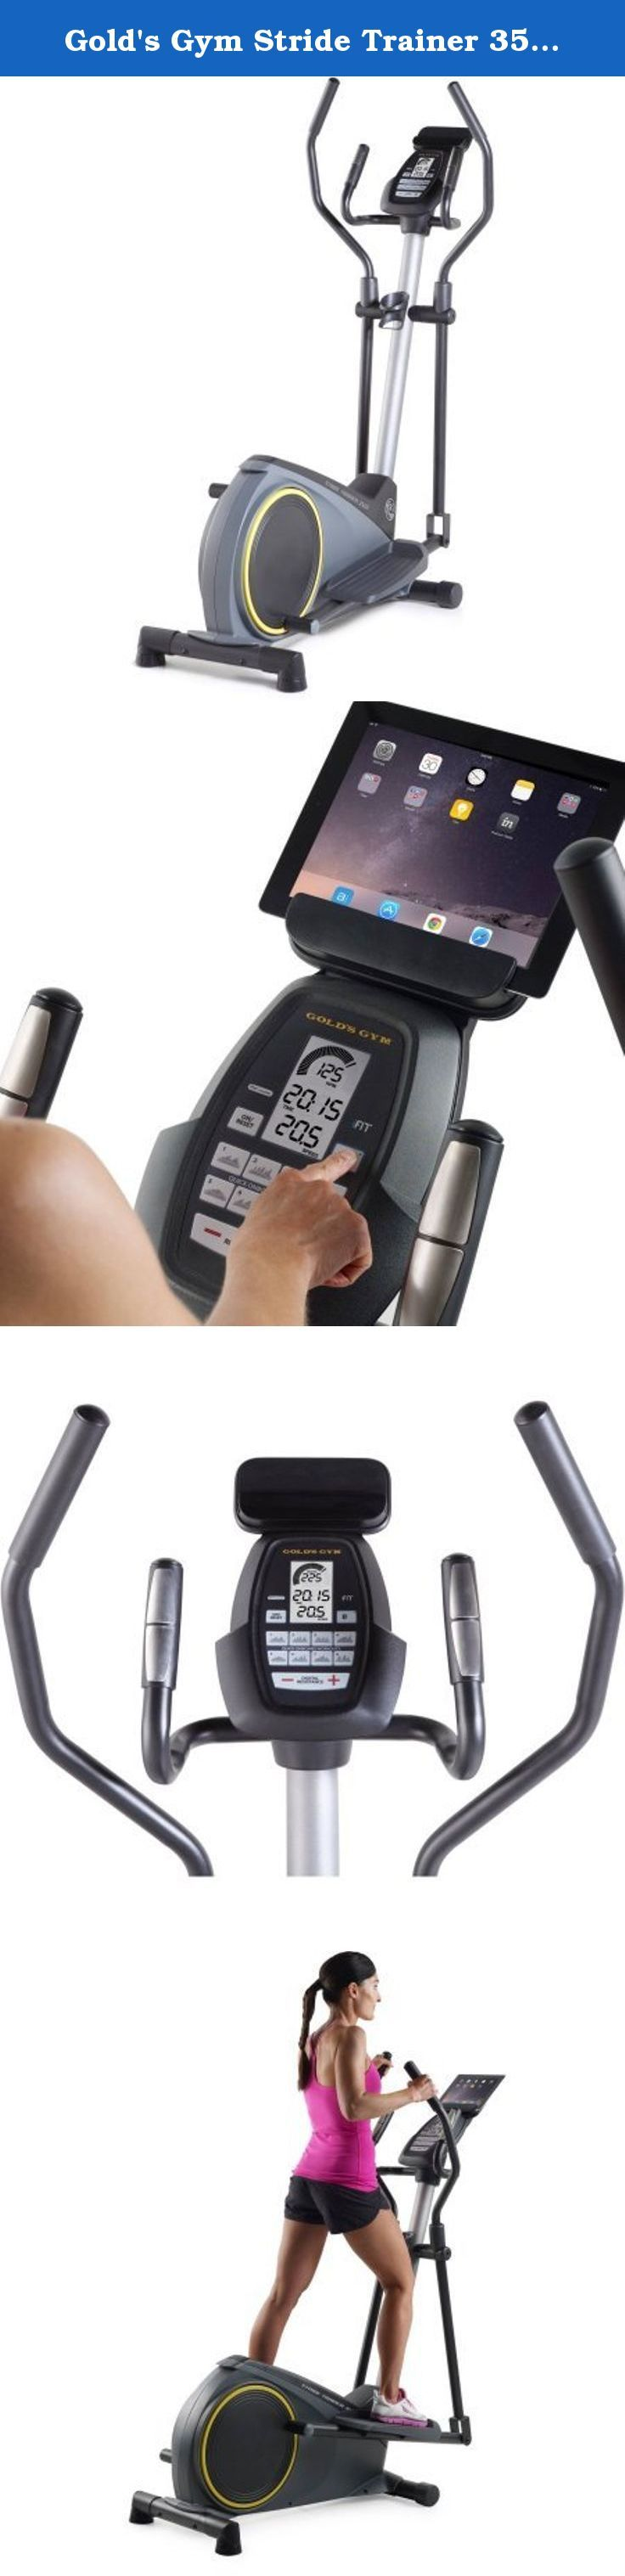 Gold's Gym Stride Trainer 350i Elliptical with iFit Bluetooth Smart Technology. For a terrific workout you can do in your own home, try the Gold's Gym Stride Trainer 350i Elliptical. This bike is iFit Bluetooth Smart enabled, granting you access to workouts designed by certified personal trainers, automatic stats tracking, and more. The console displays speed, distance, heart rate, calories burned and time on a large LCD window and allows you to adjust the resistance through 12 levels at…